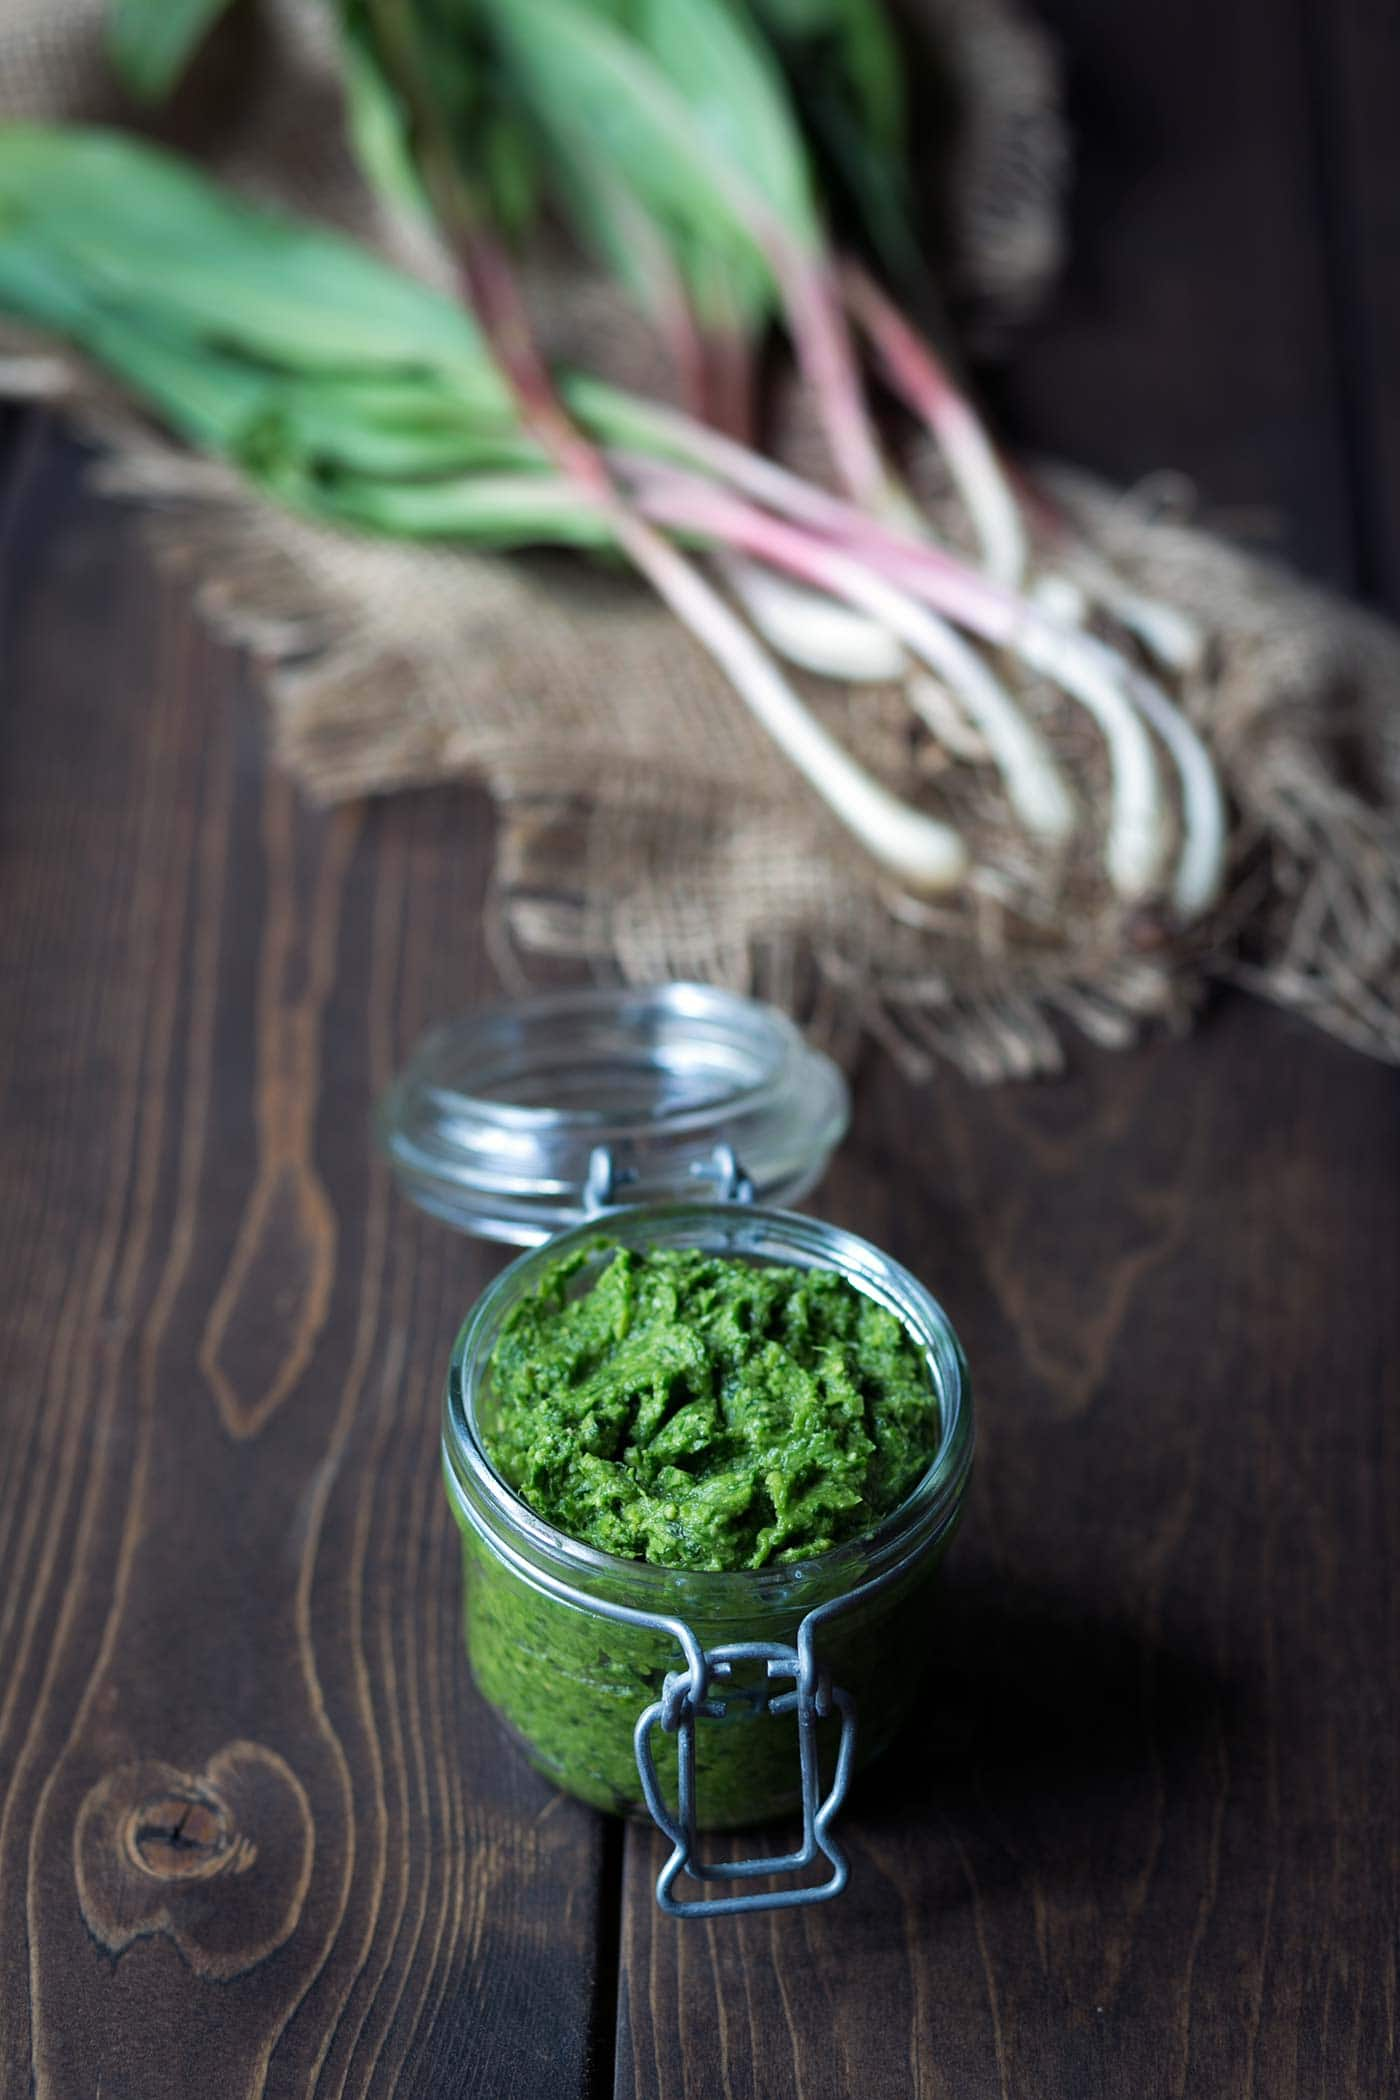 Ramp Pesto is a creamy, bold flavored condiment highlighting wild leeks. Add it to pasta, serve it with fish, meat or poultry, or spread it on crostini! Get the recipe from SavorySimple.net